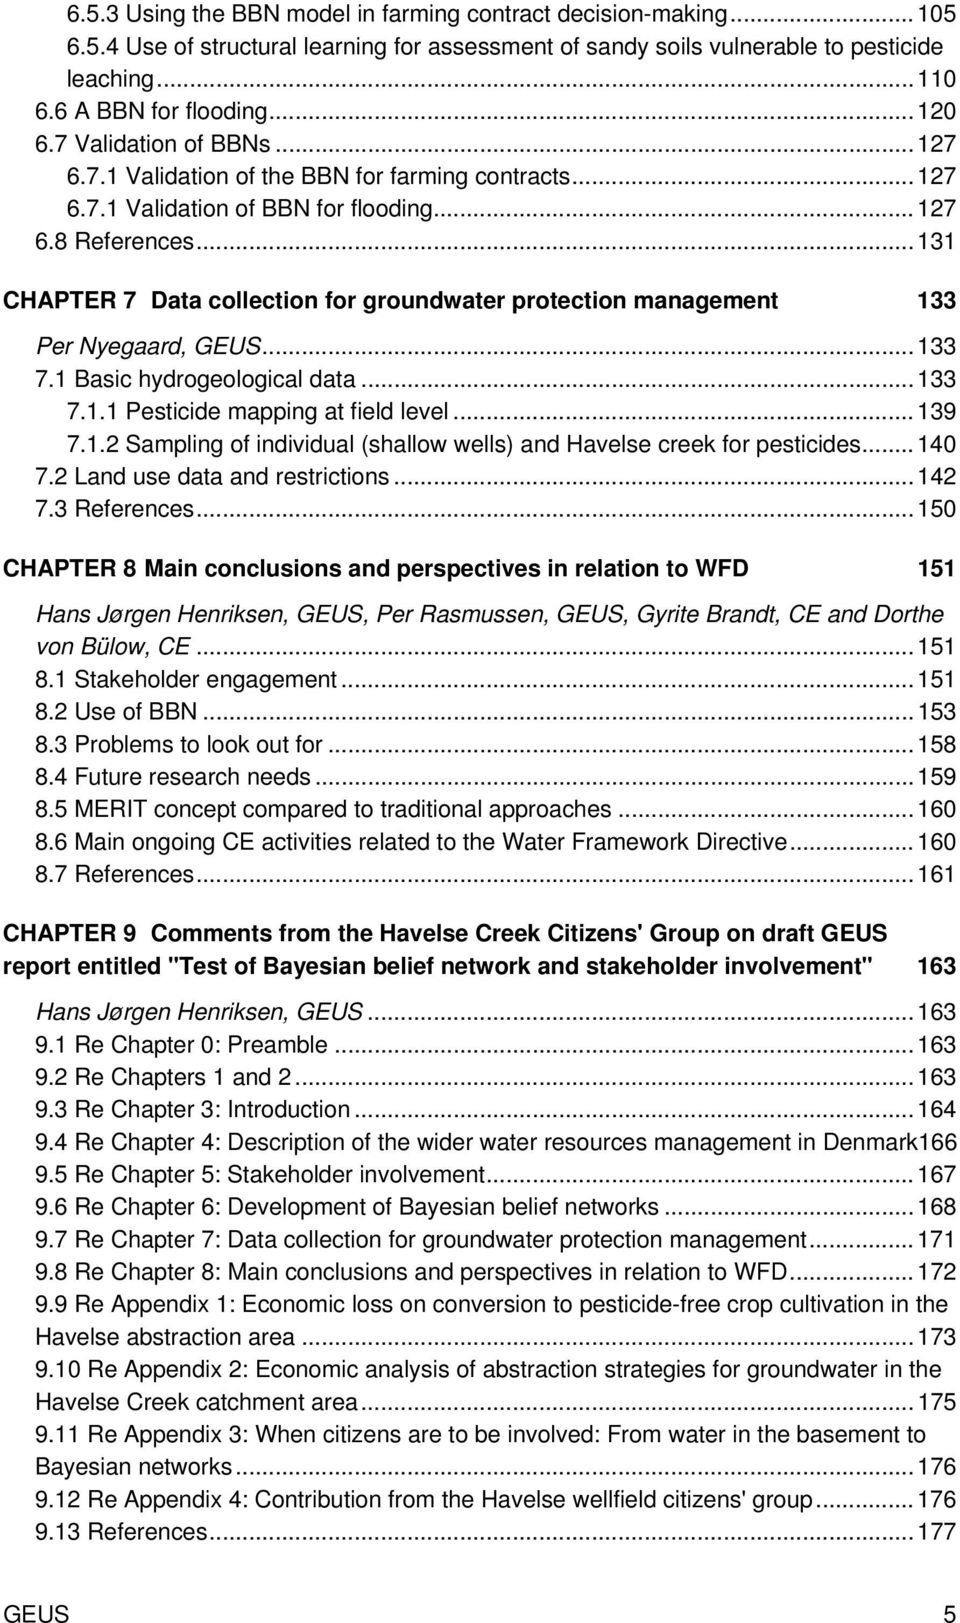 .. 131 CHAPTER 7 Data collection for groundwater protection management 133 Per Nyegaard, GEUS... 133 7.1 Basic hydrogeological data... 133 7.1.1 Pesticide mapping at field level... 139 7.1.2 Sampling of individual (shallow wells) and Havelse creek for pesticides.